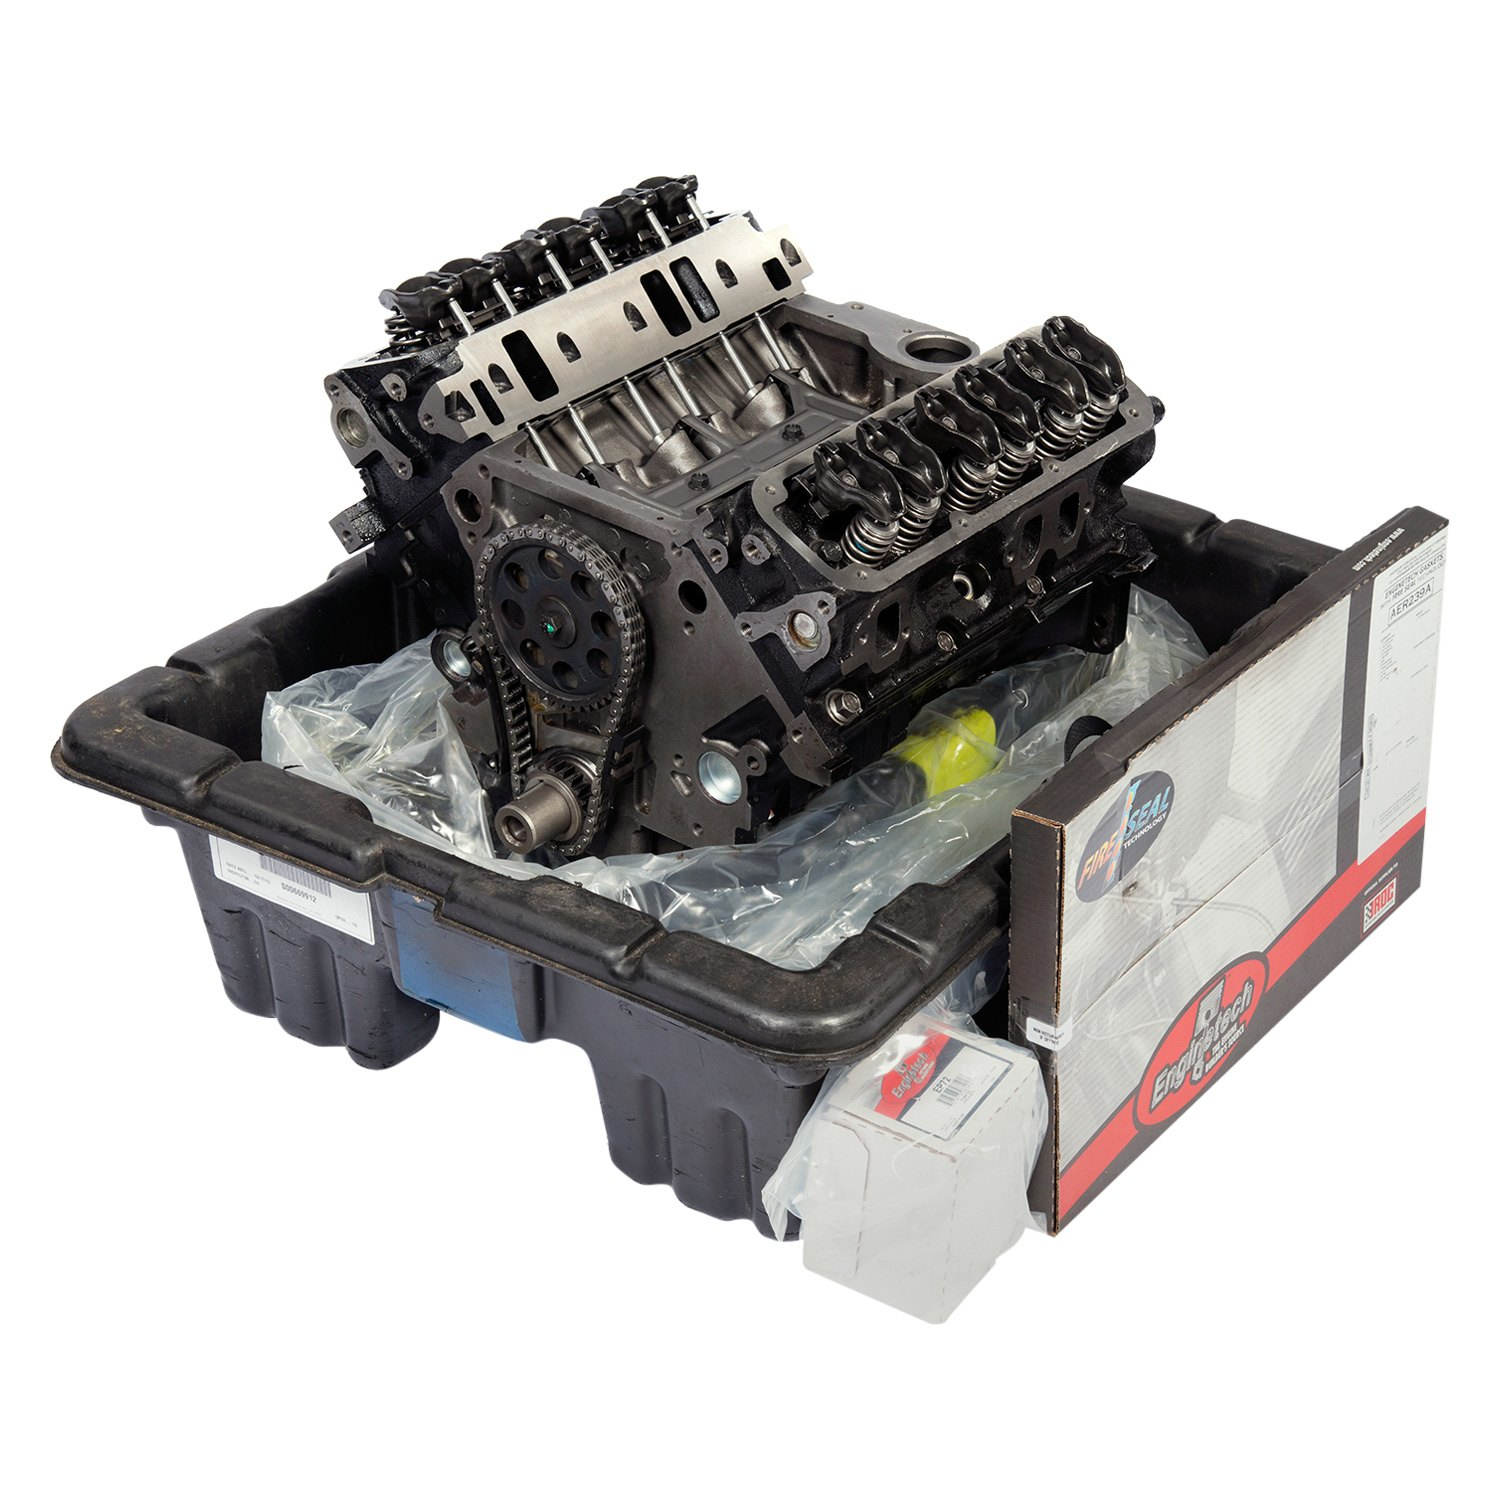 Dodge Dakota 2000 Remanufactured Complete: For Dodge Ram 1500 94-01 Dahmer Powertrain Remanufactured